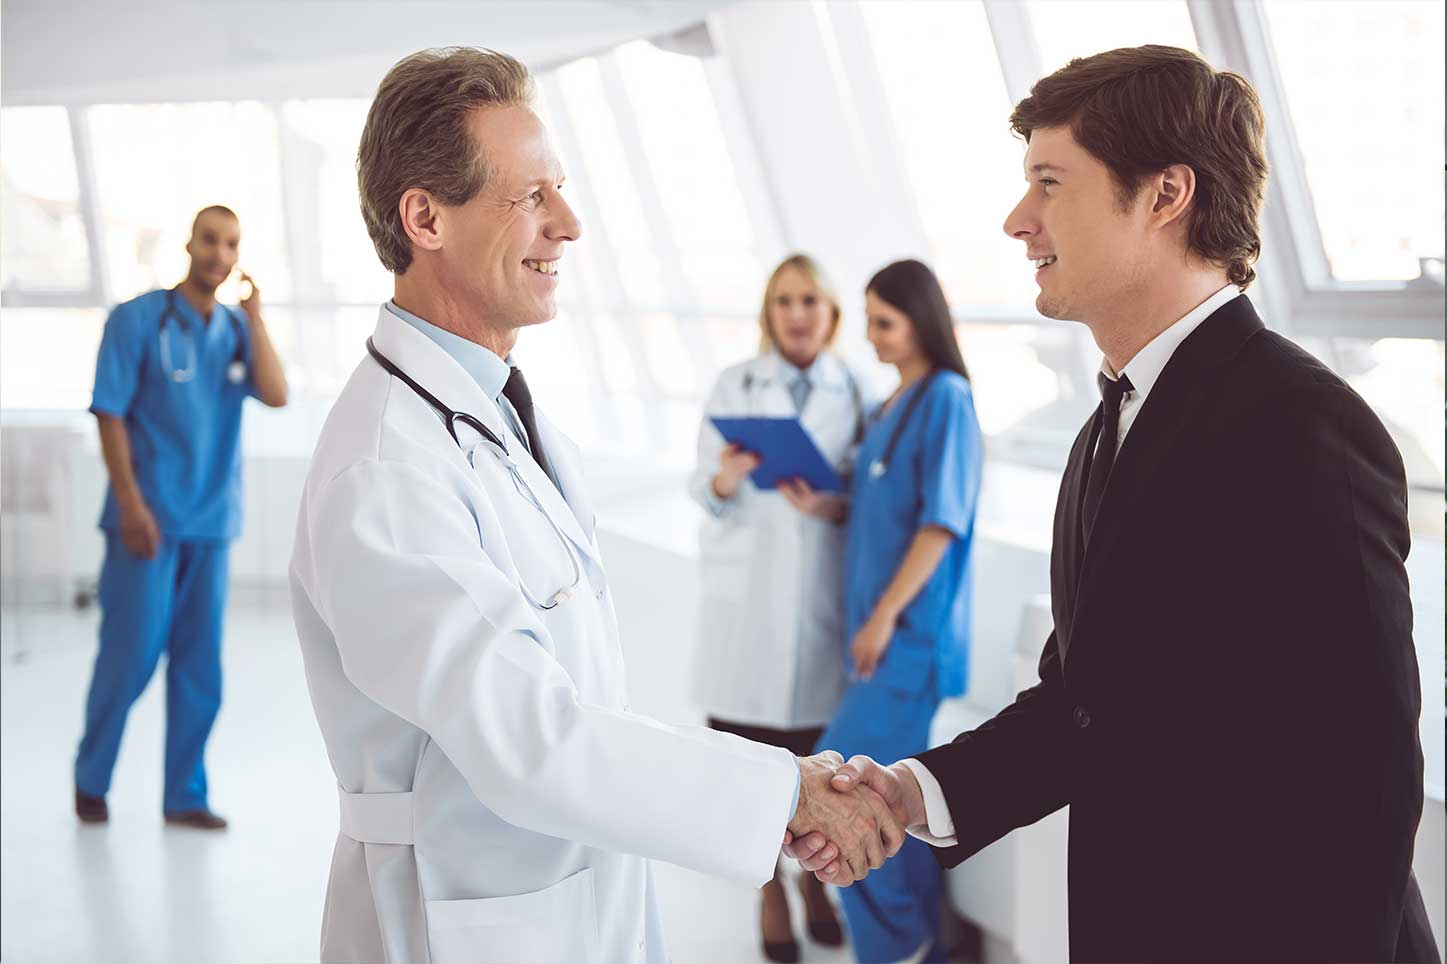 How Vendor Credentialing Streamlines Compliance for Hospitals